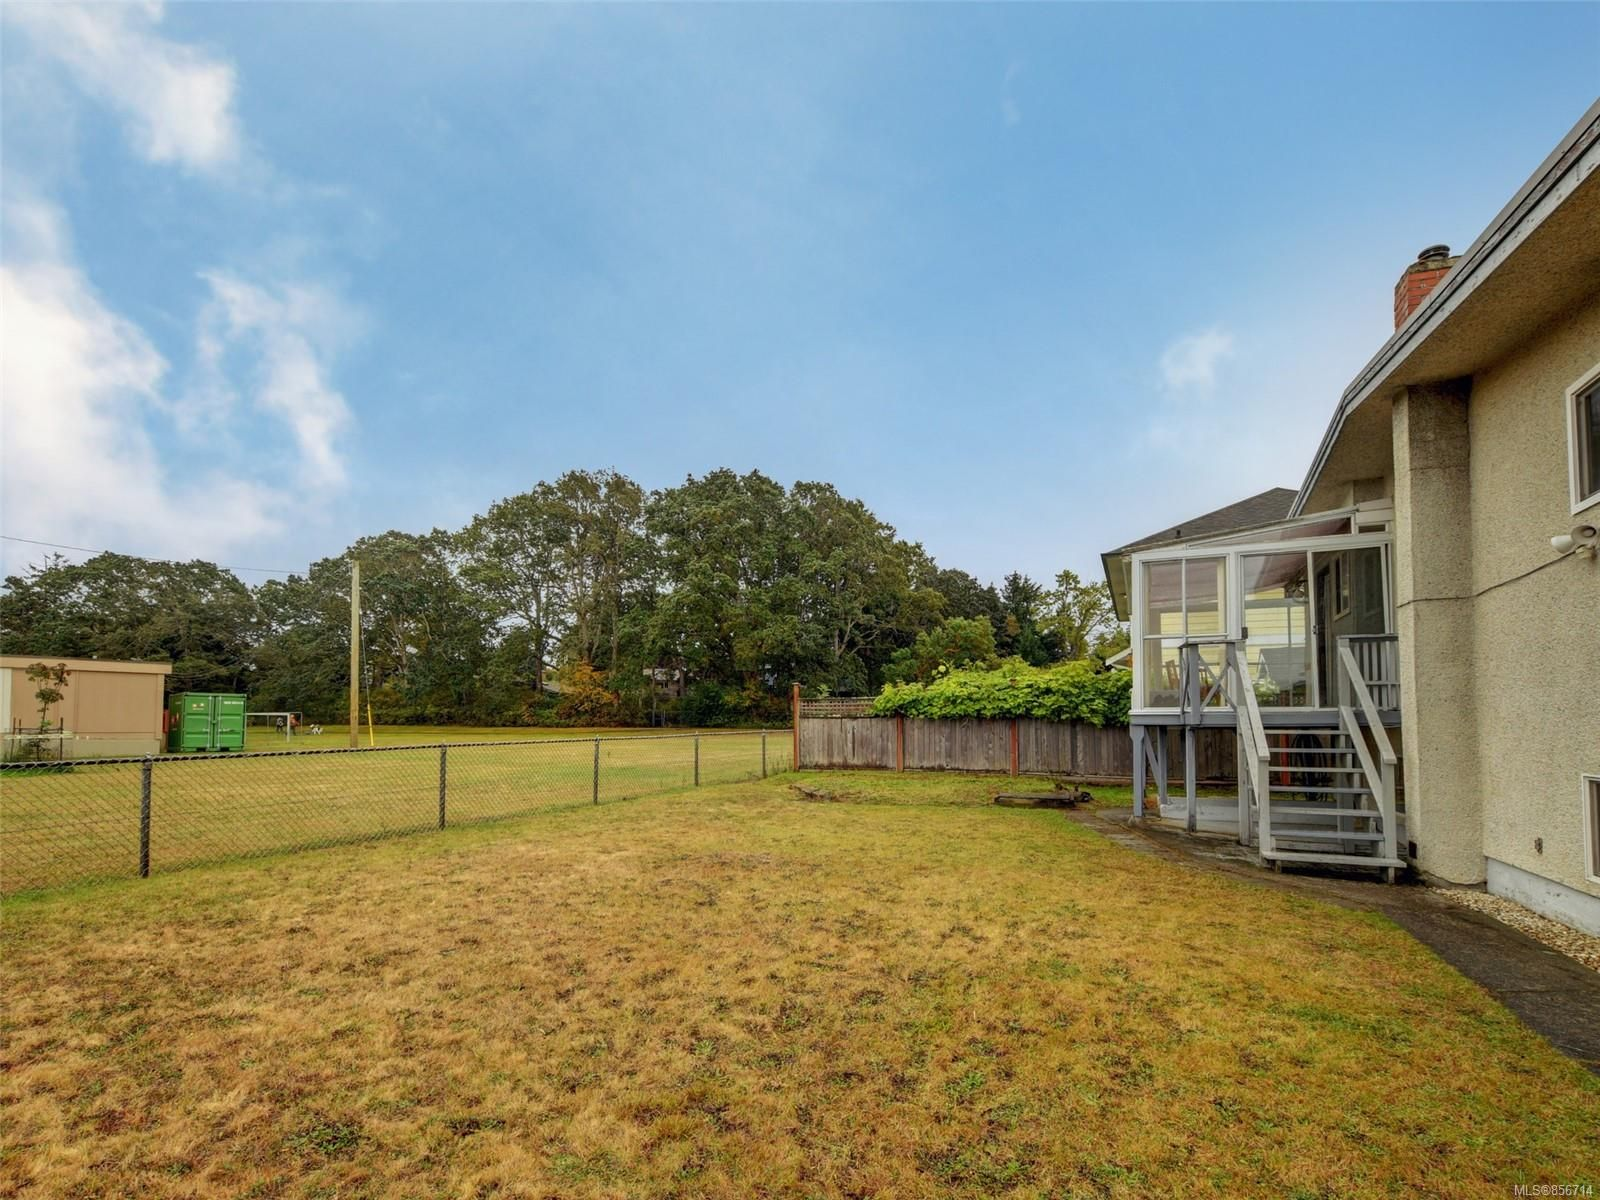 Photo 22: Photos: 3909 Ansell Rd in : SE Mt Tolmie House for sale (Saanich East)  : MLS®# 856714